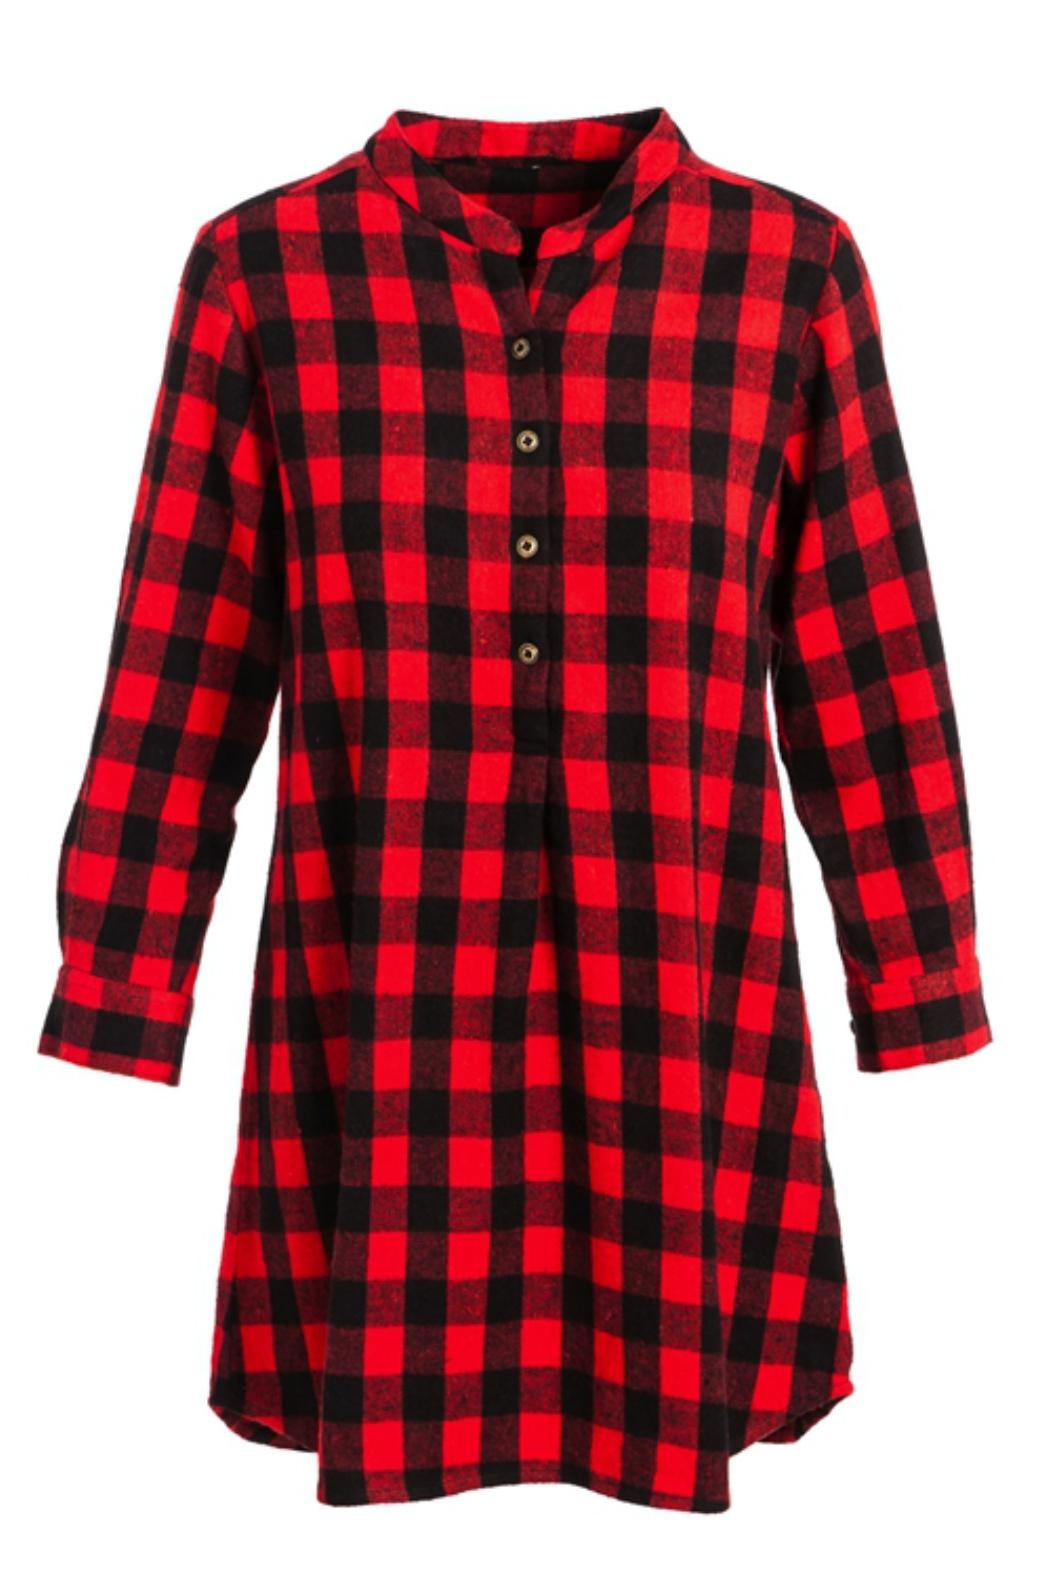 Evergreen Enterprises Buffalo Plaid Shirtdress - Front Full Image